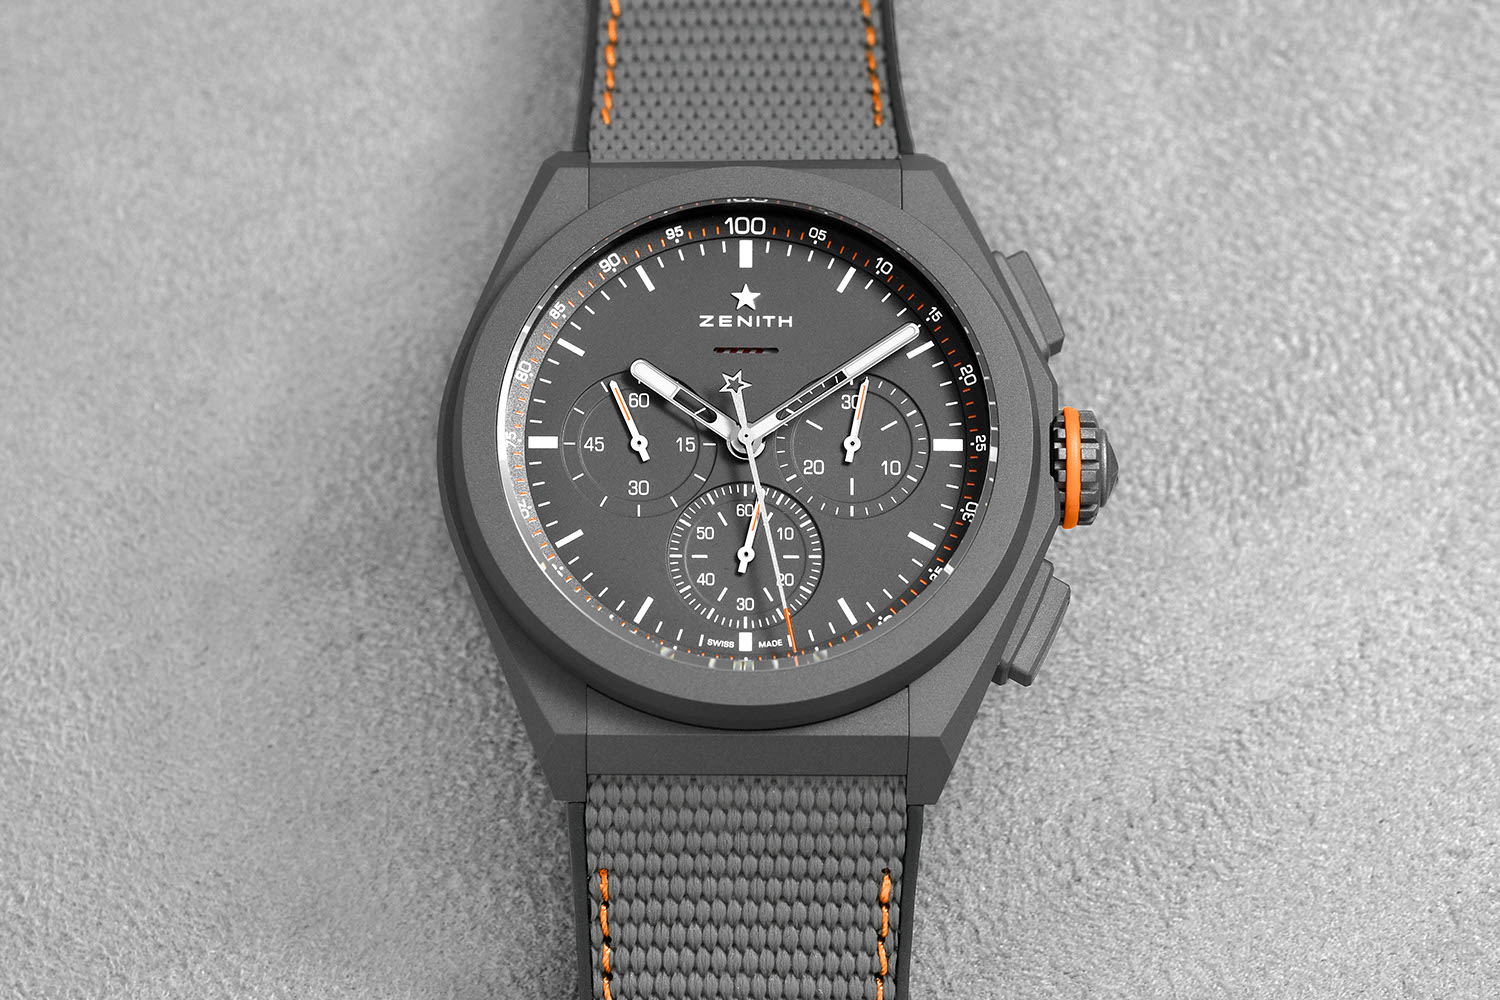 The Zenith Defy 21 Land Rover Edition (Image © Revolution)